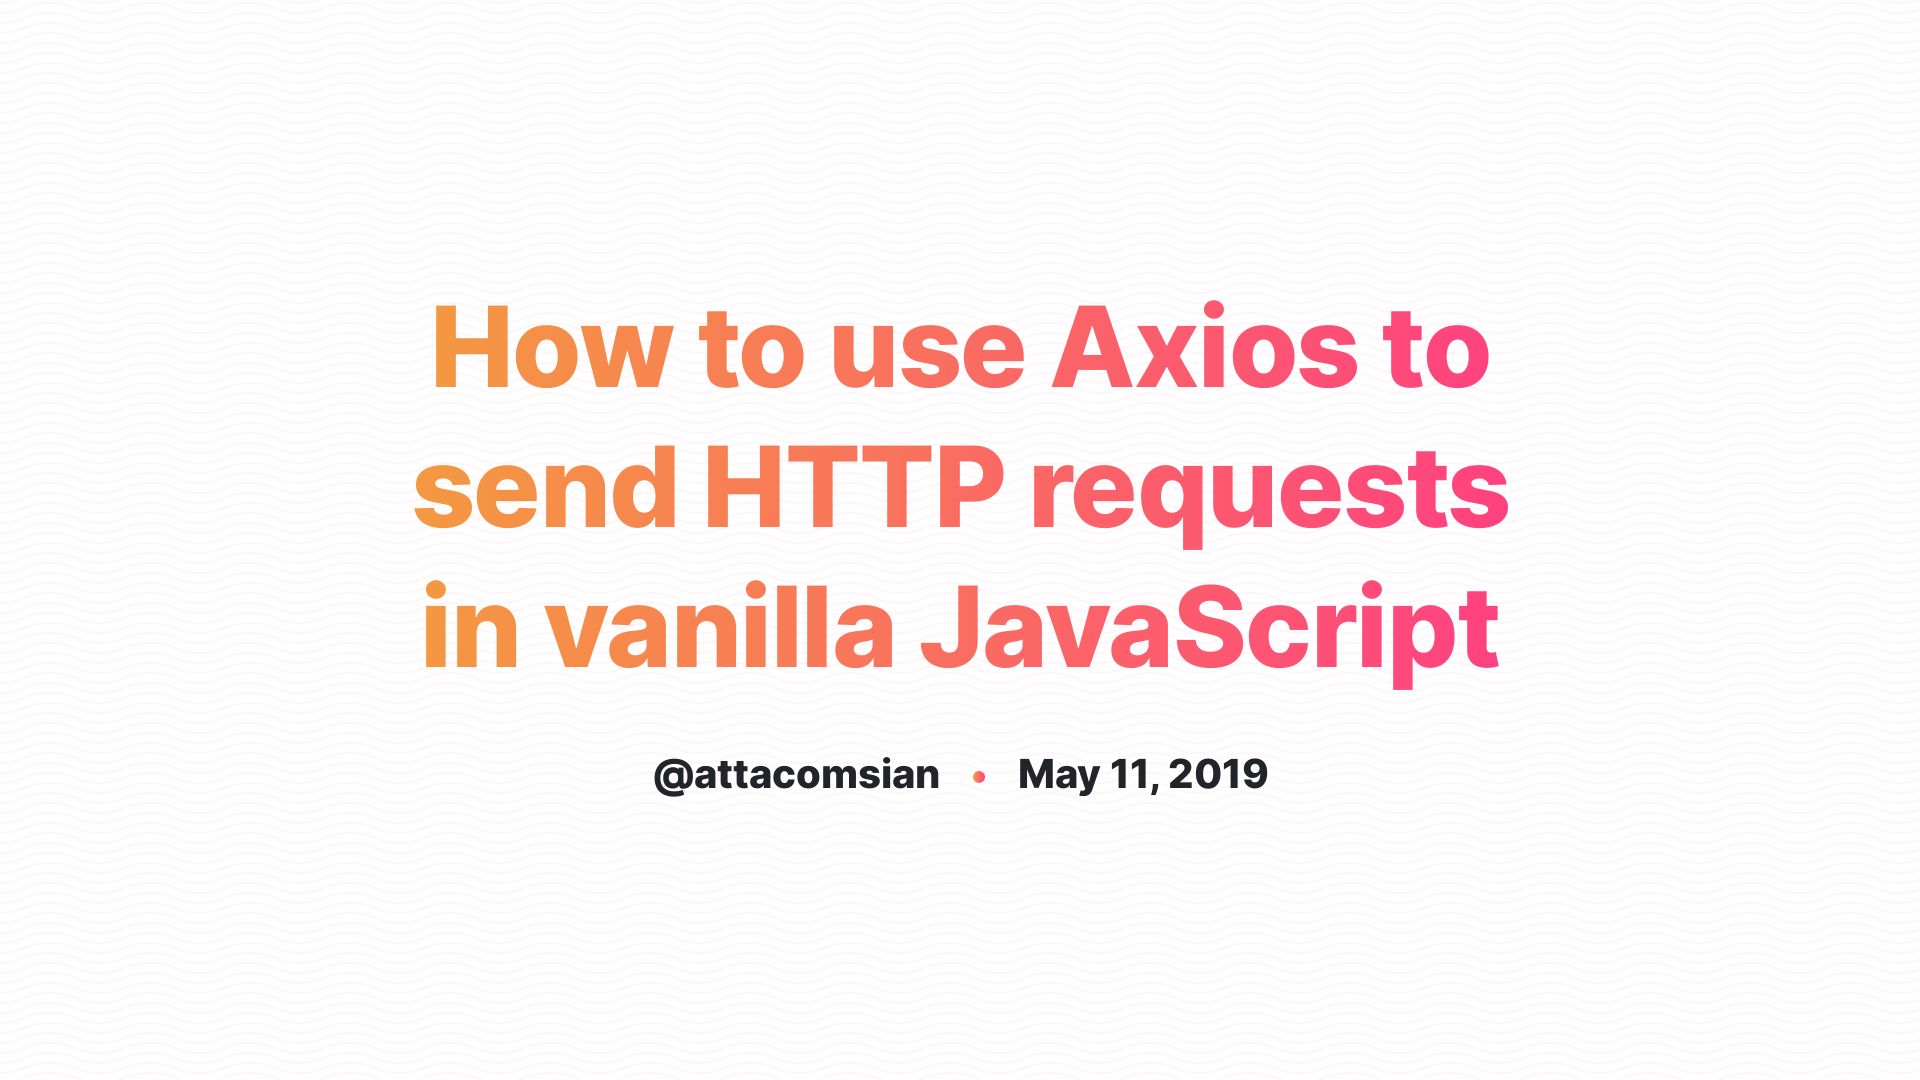 How to use Axios in JavaScript